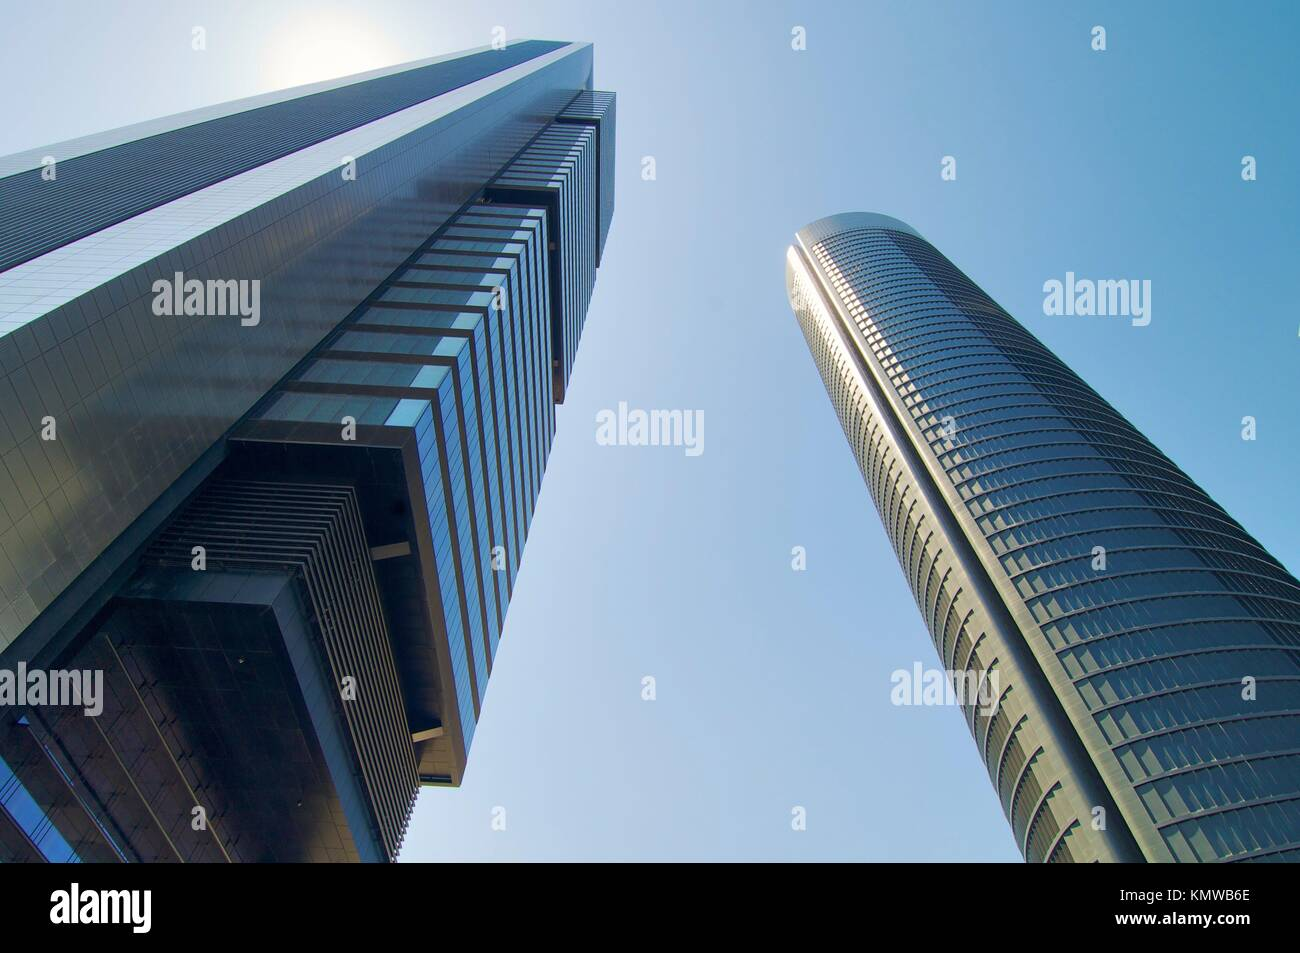 Two skyscrapers from below in Madrid, Spain Stock Photo